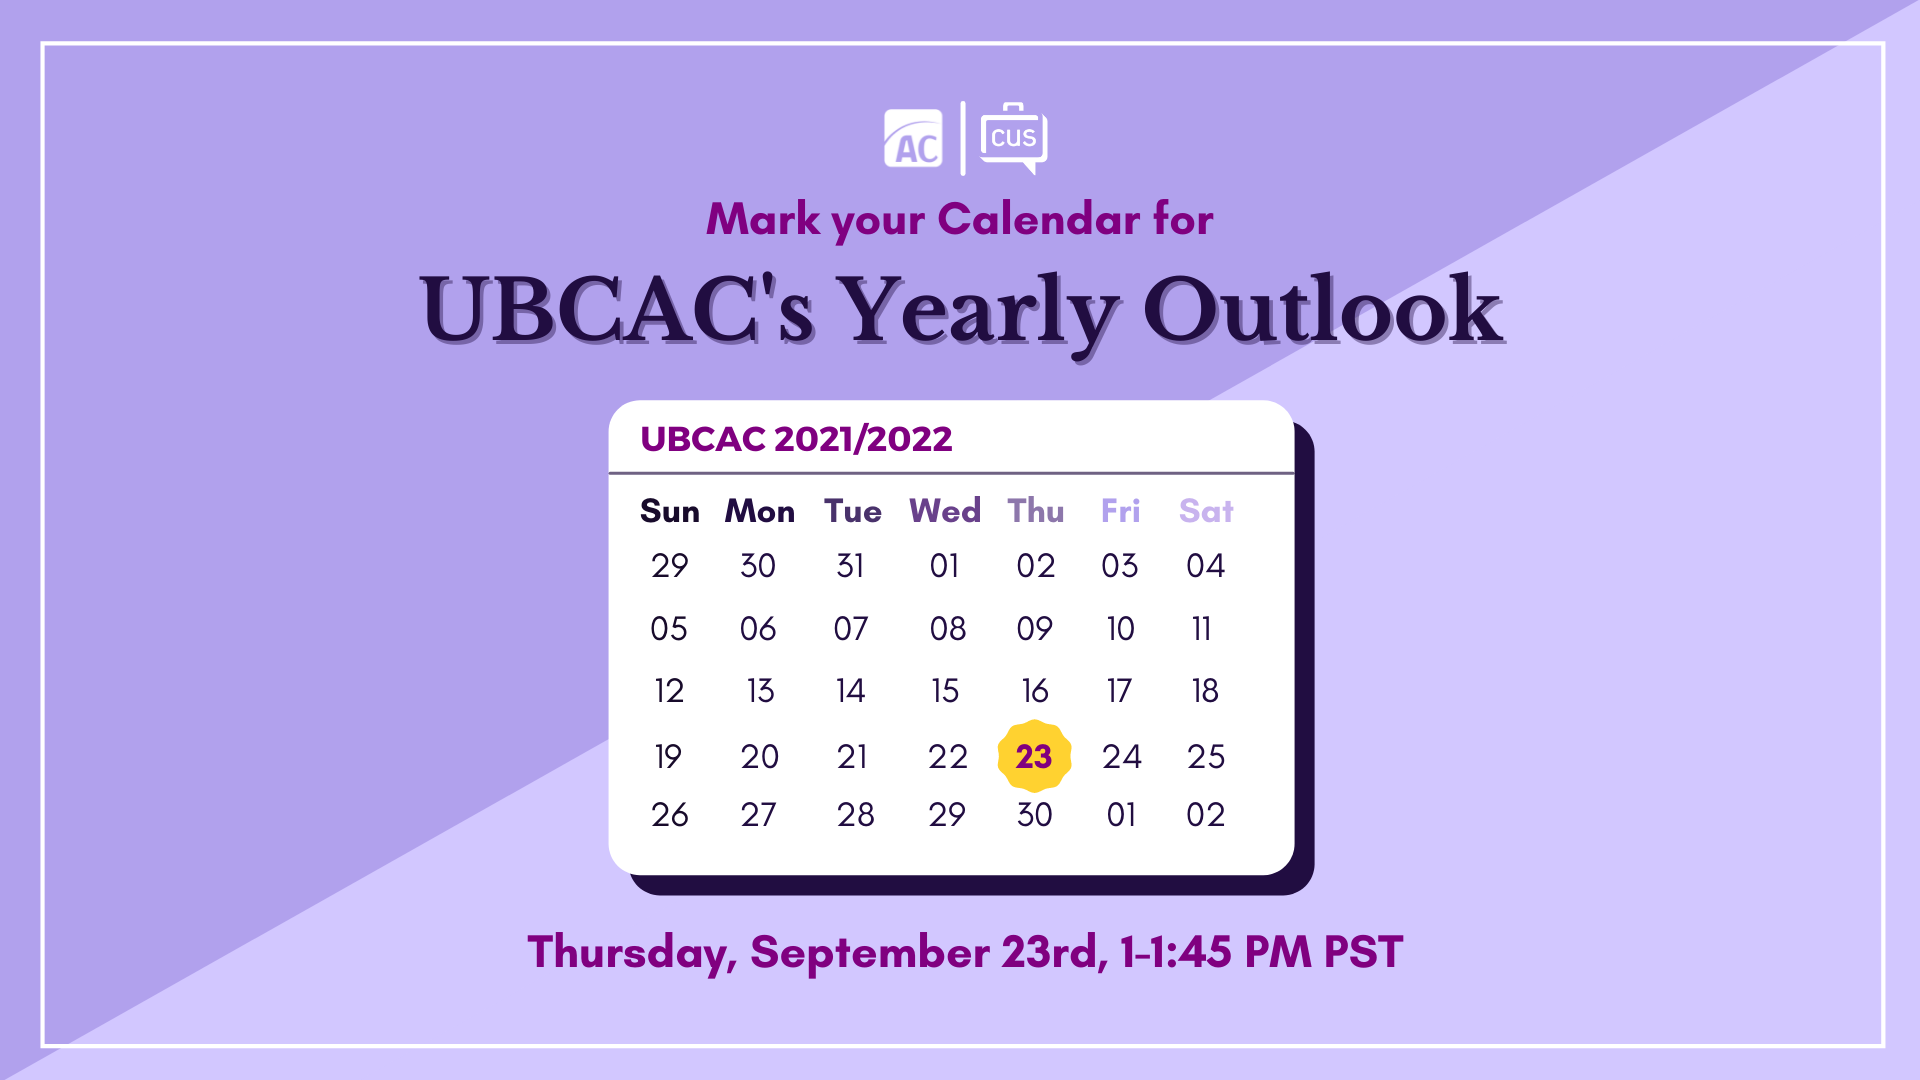 UBCAC's Yearly Outlook